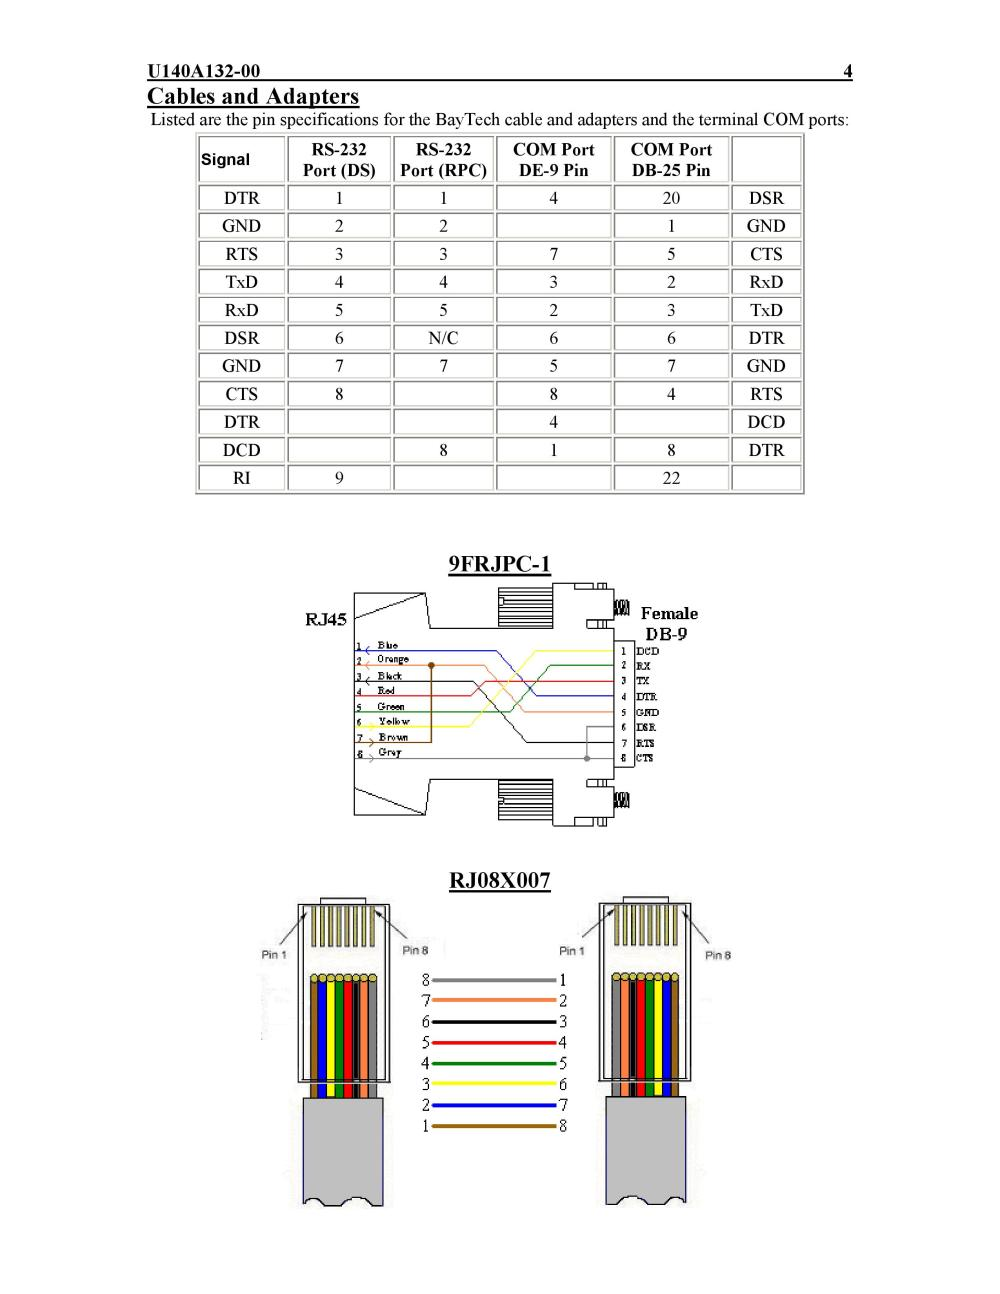 medium resolution of serial can t figure out eia 232 rj45 to db9 cable seems db9 female to rj45 modular adapter wiring diagram db9 to rj45 wiring diagram